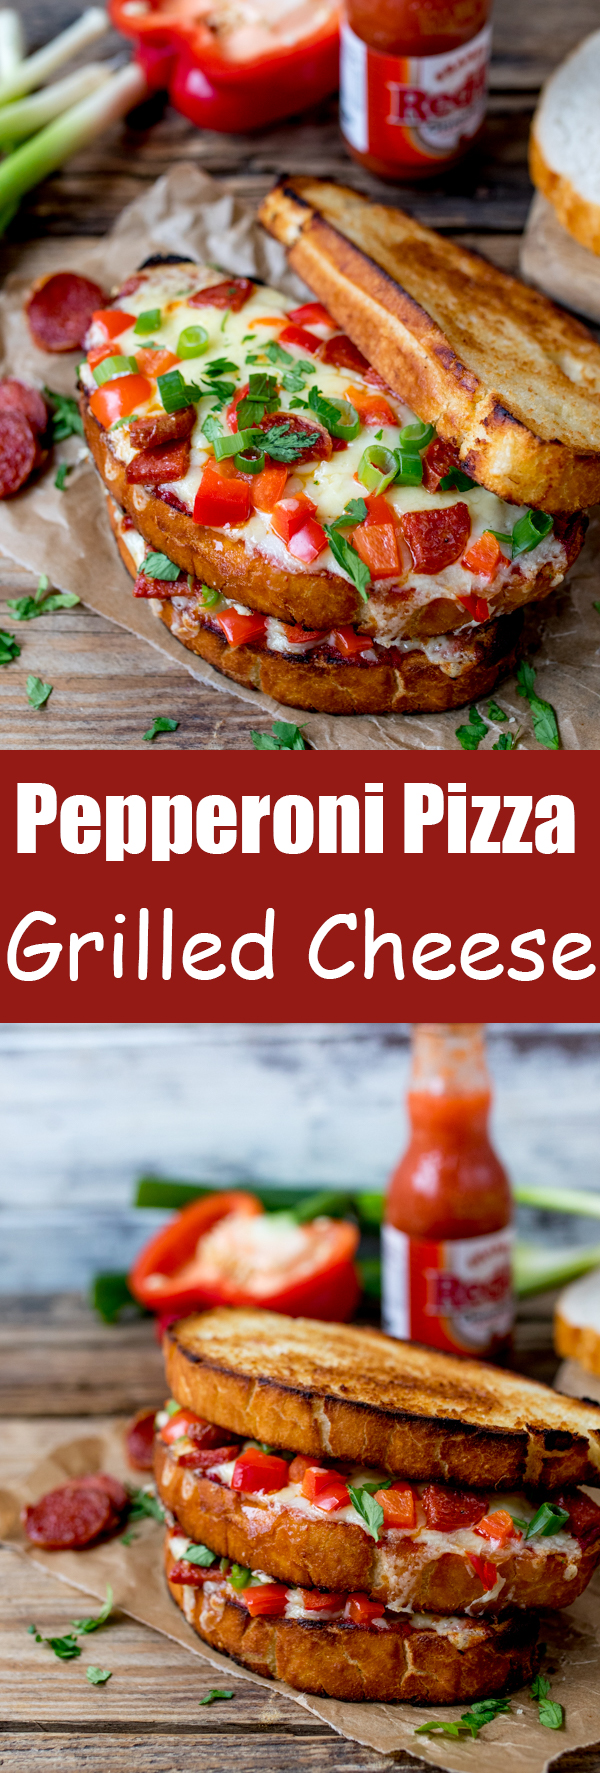 pepperoni pizza grilled cheese pin